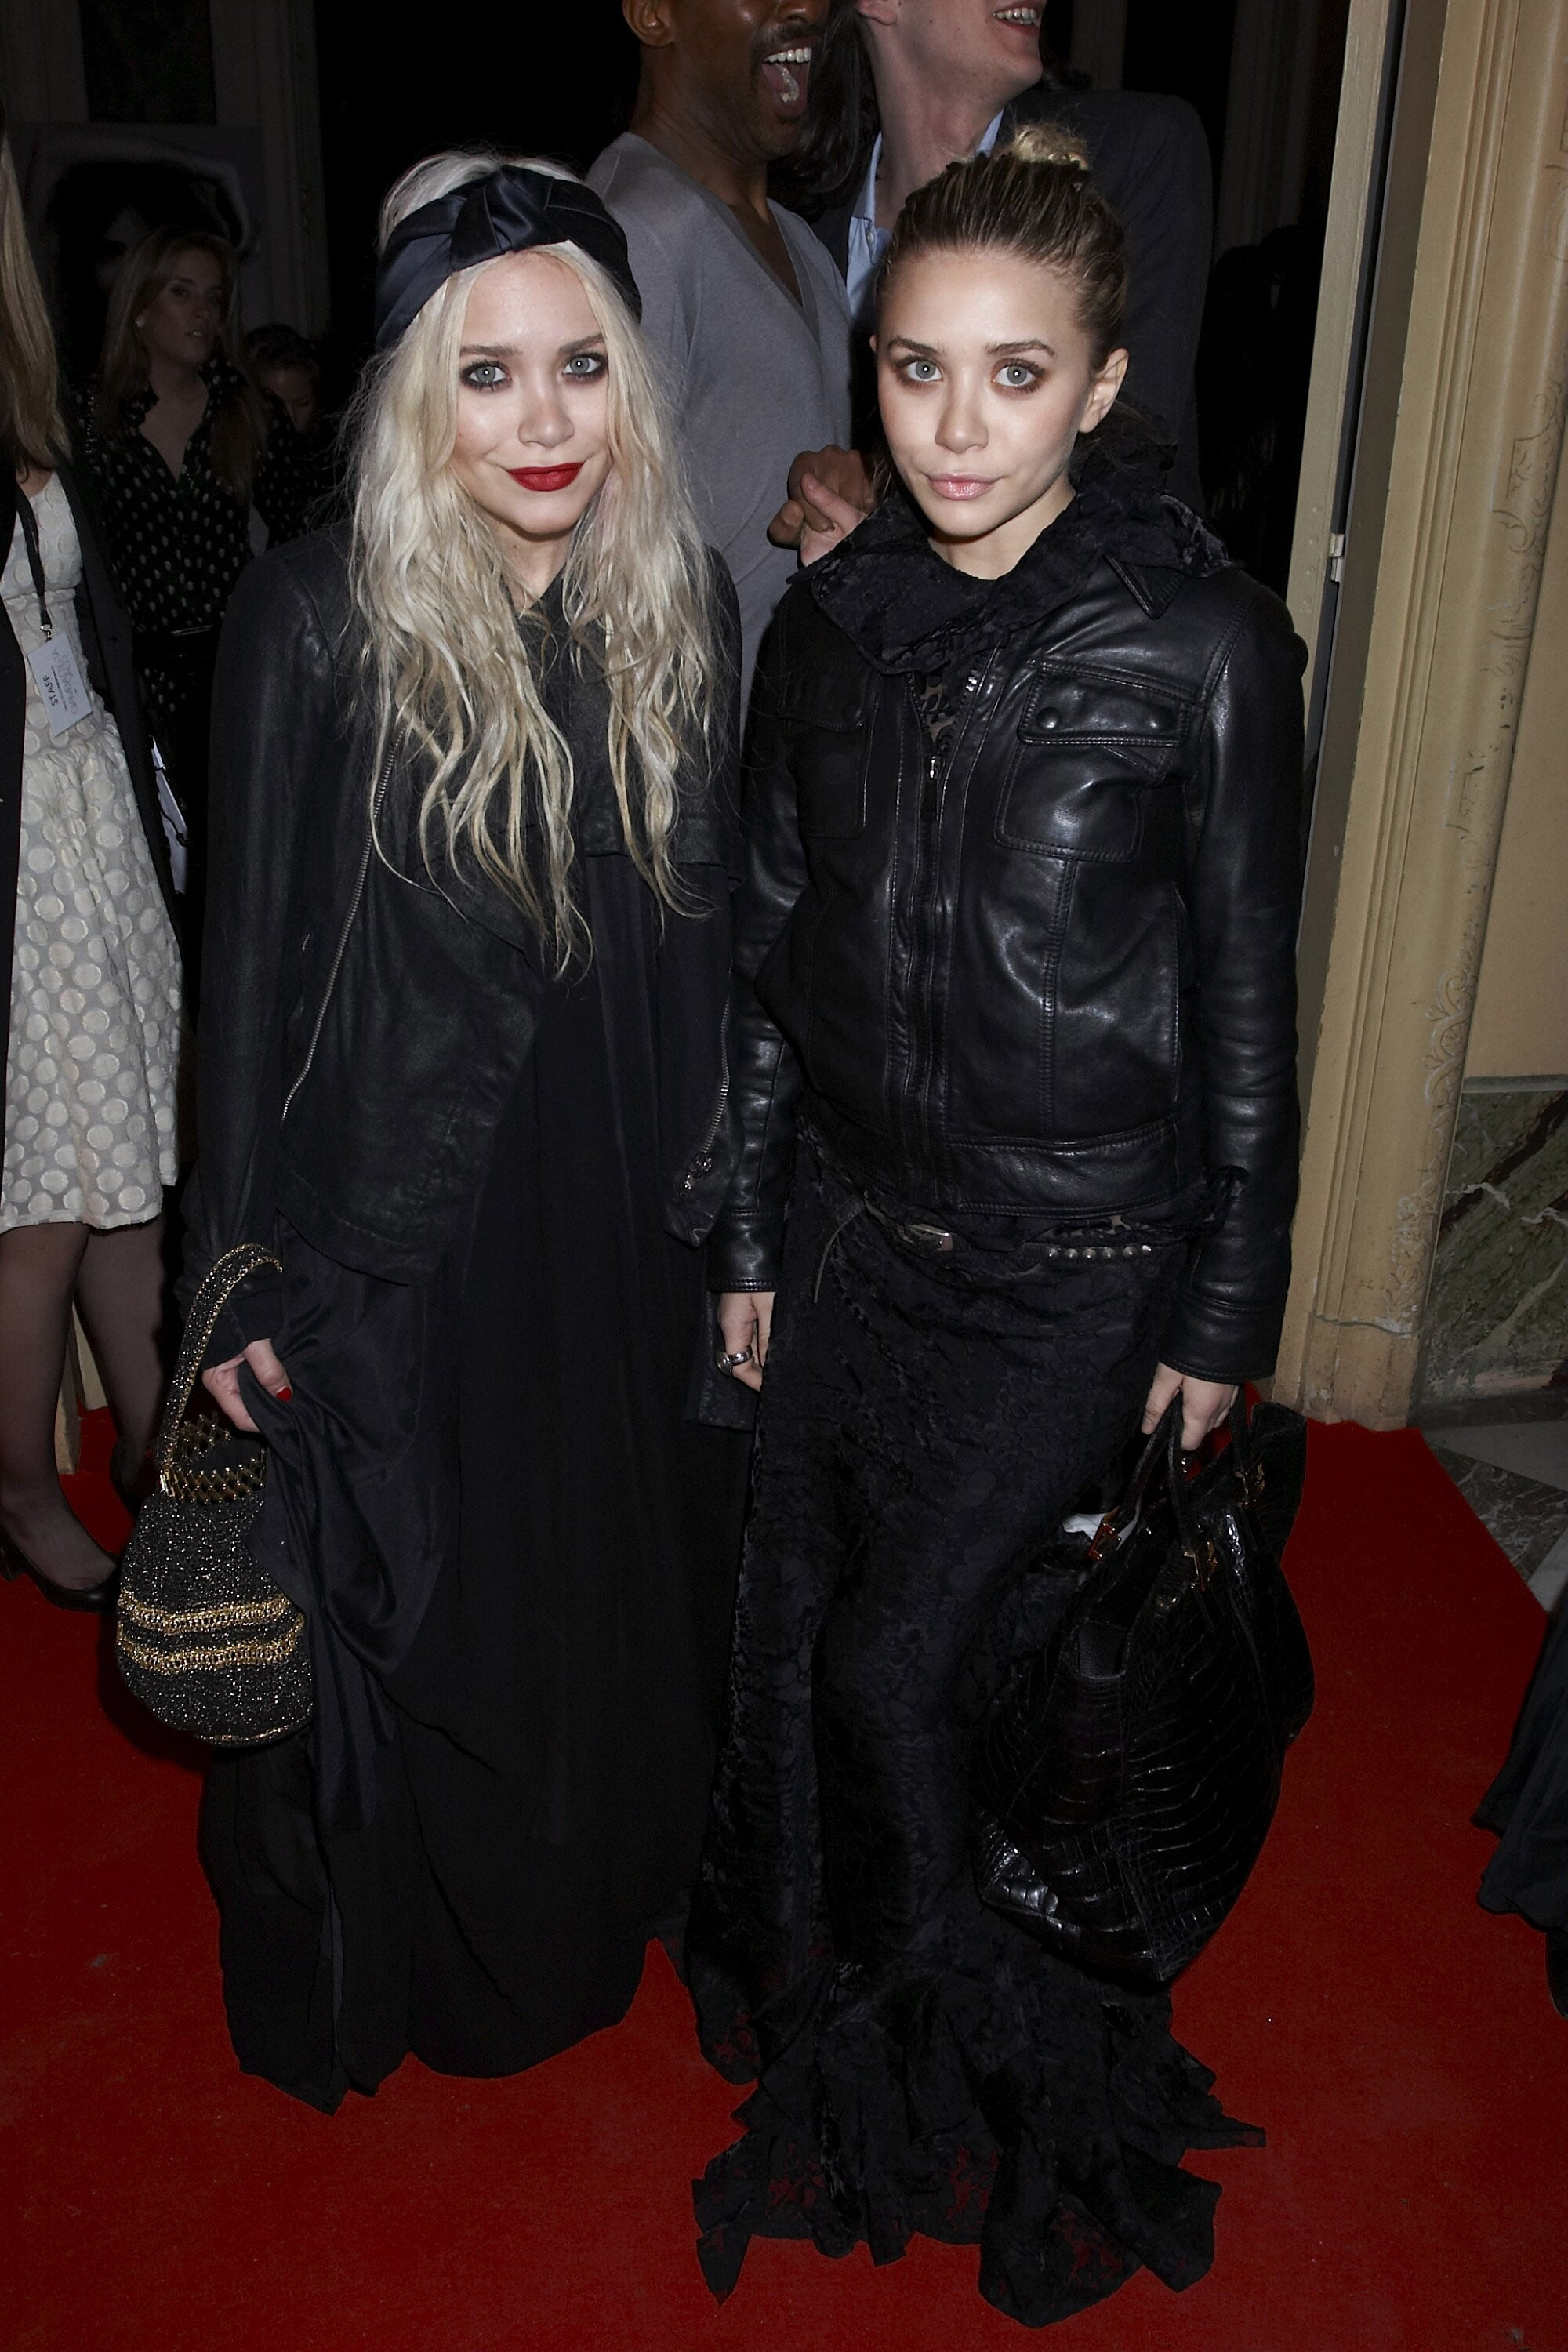 Twinning combo: It was all about leather jackets and black maxis for the Giambattista Valli Fall/Winter 2007 show during Paris Fashion Week.  Mary-Kate finished off her LBG — long black gown — with an open leather jacket, satin turbin, and beaded bag. Ashley zipped her soft leather topper over a dramatic lace gown and toted a black crocodile bag.